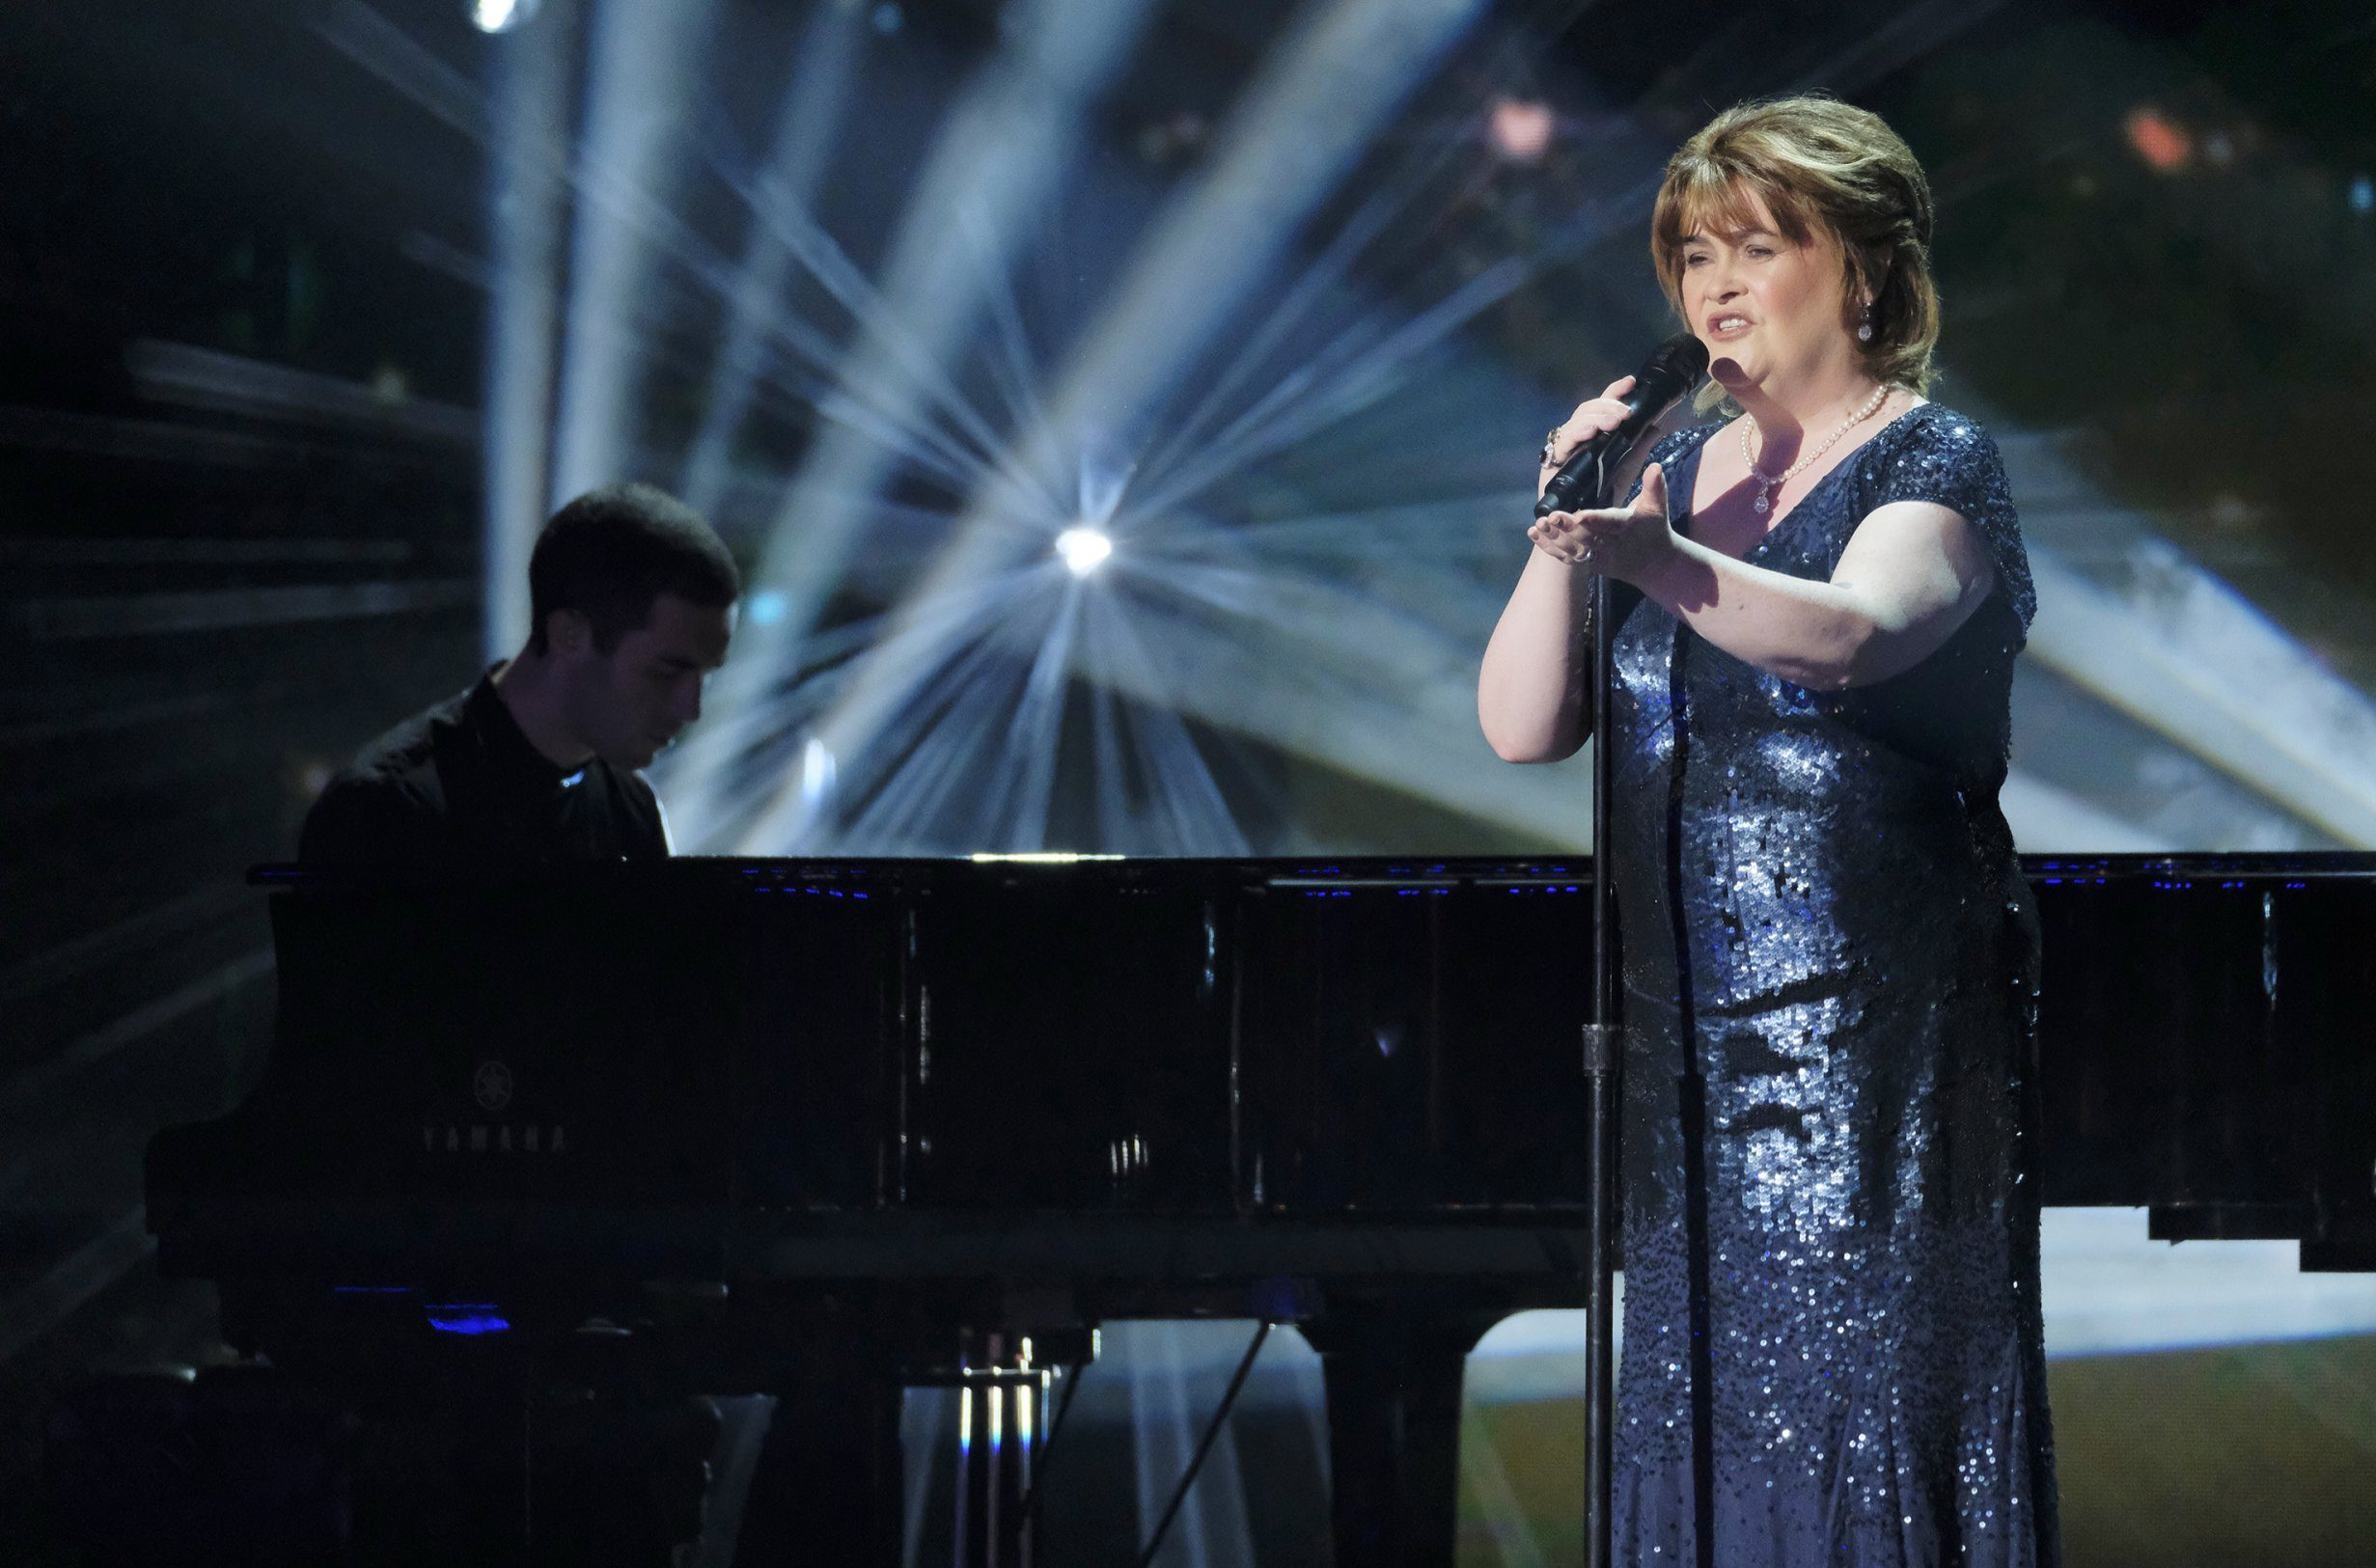 Susan Boyle brushes off being worth £20million: 'Money doesn't bother me'